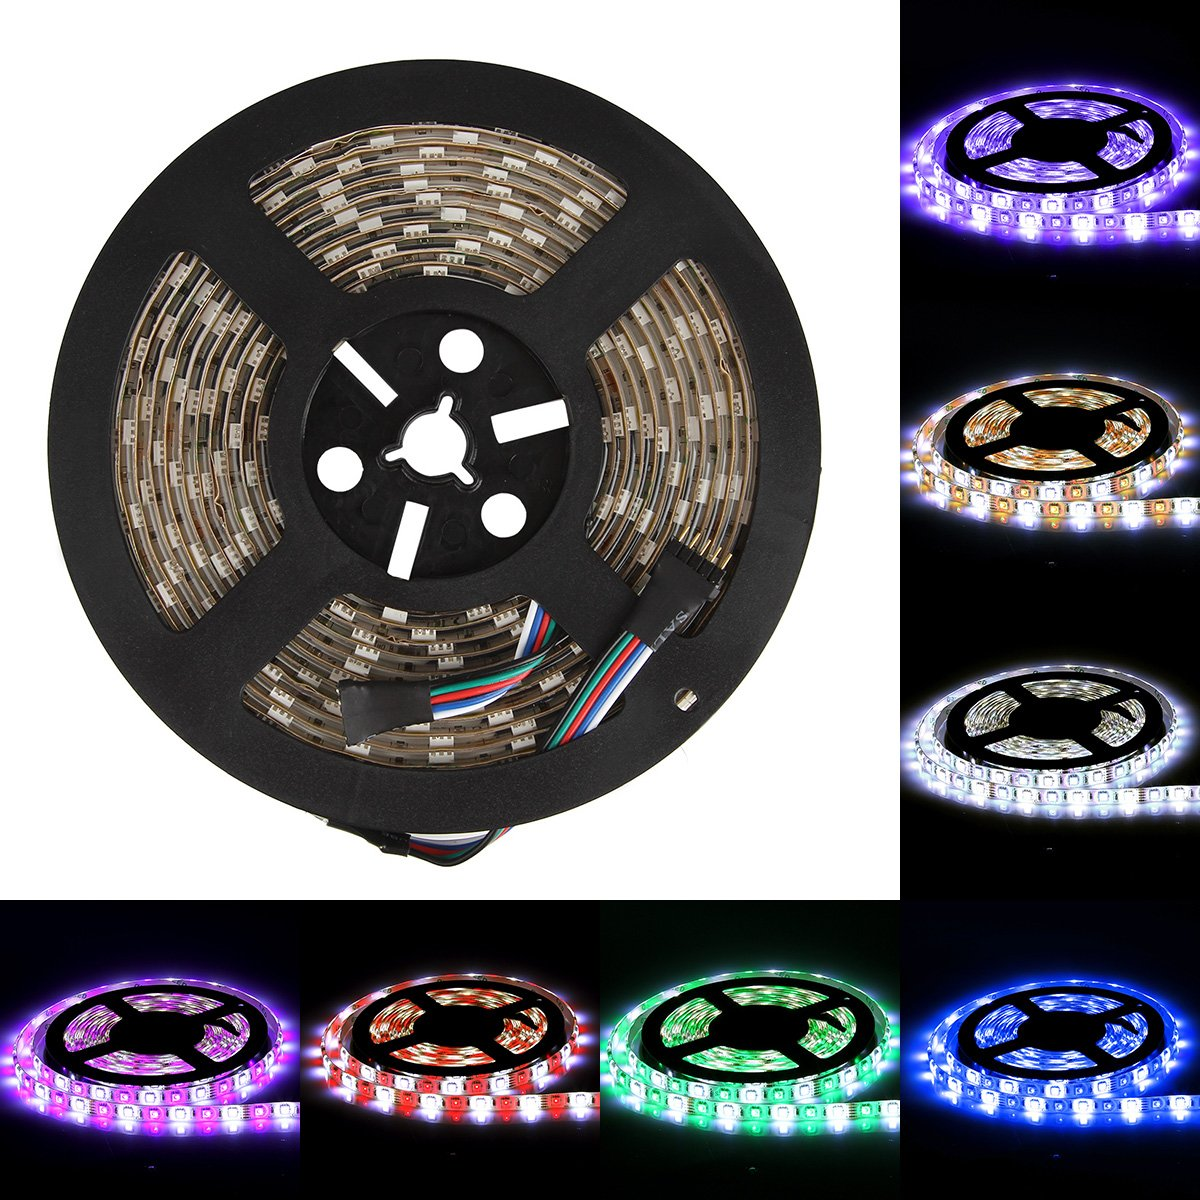 SUPERNIGHT 16.4ft 5050 300leds Waterproof RGBW LED Strip Flexible Light - Black Roll by SUPERNIGHT (Image #8)